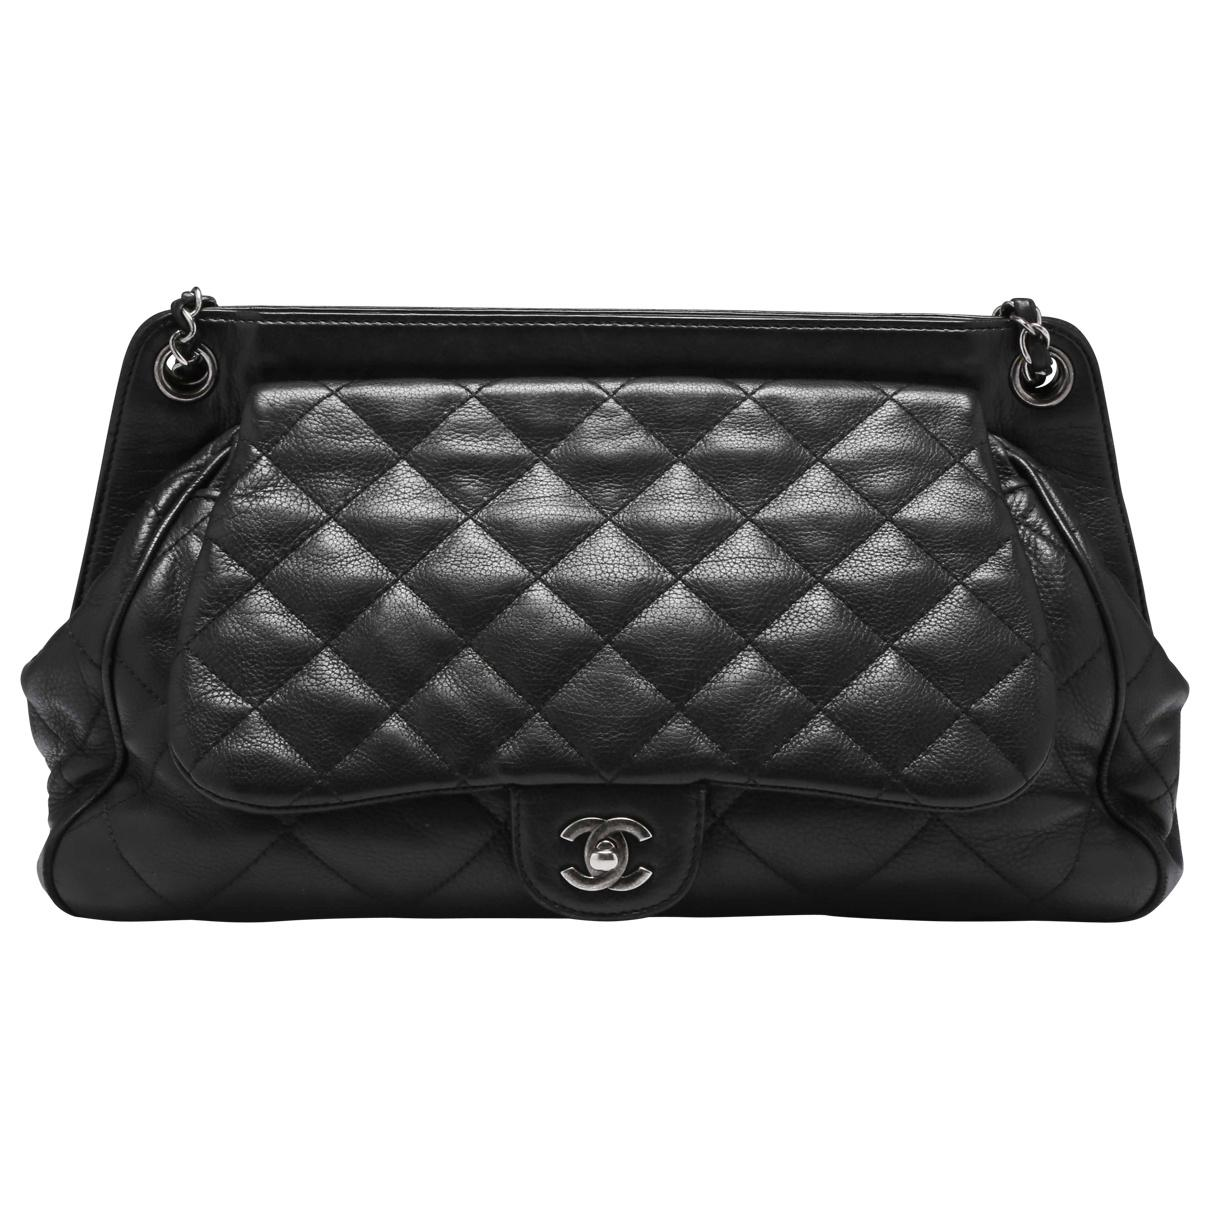 Lyst - Chanel Pre-owned Caviar Bowling Bag in Black 420c057d62